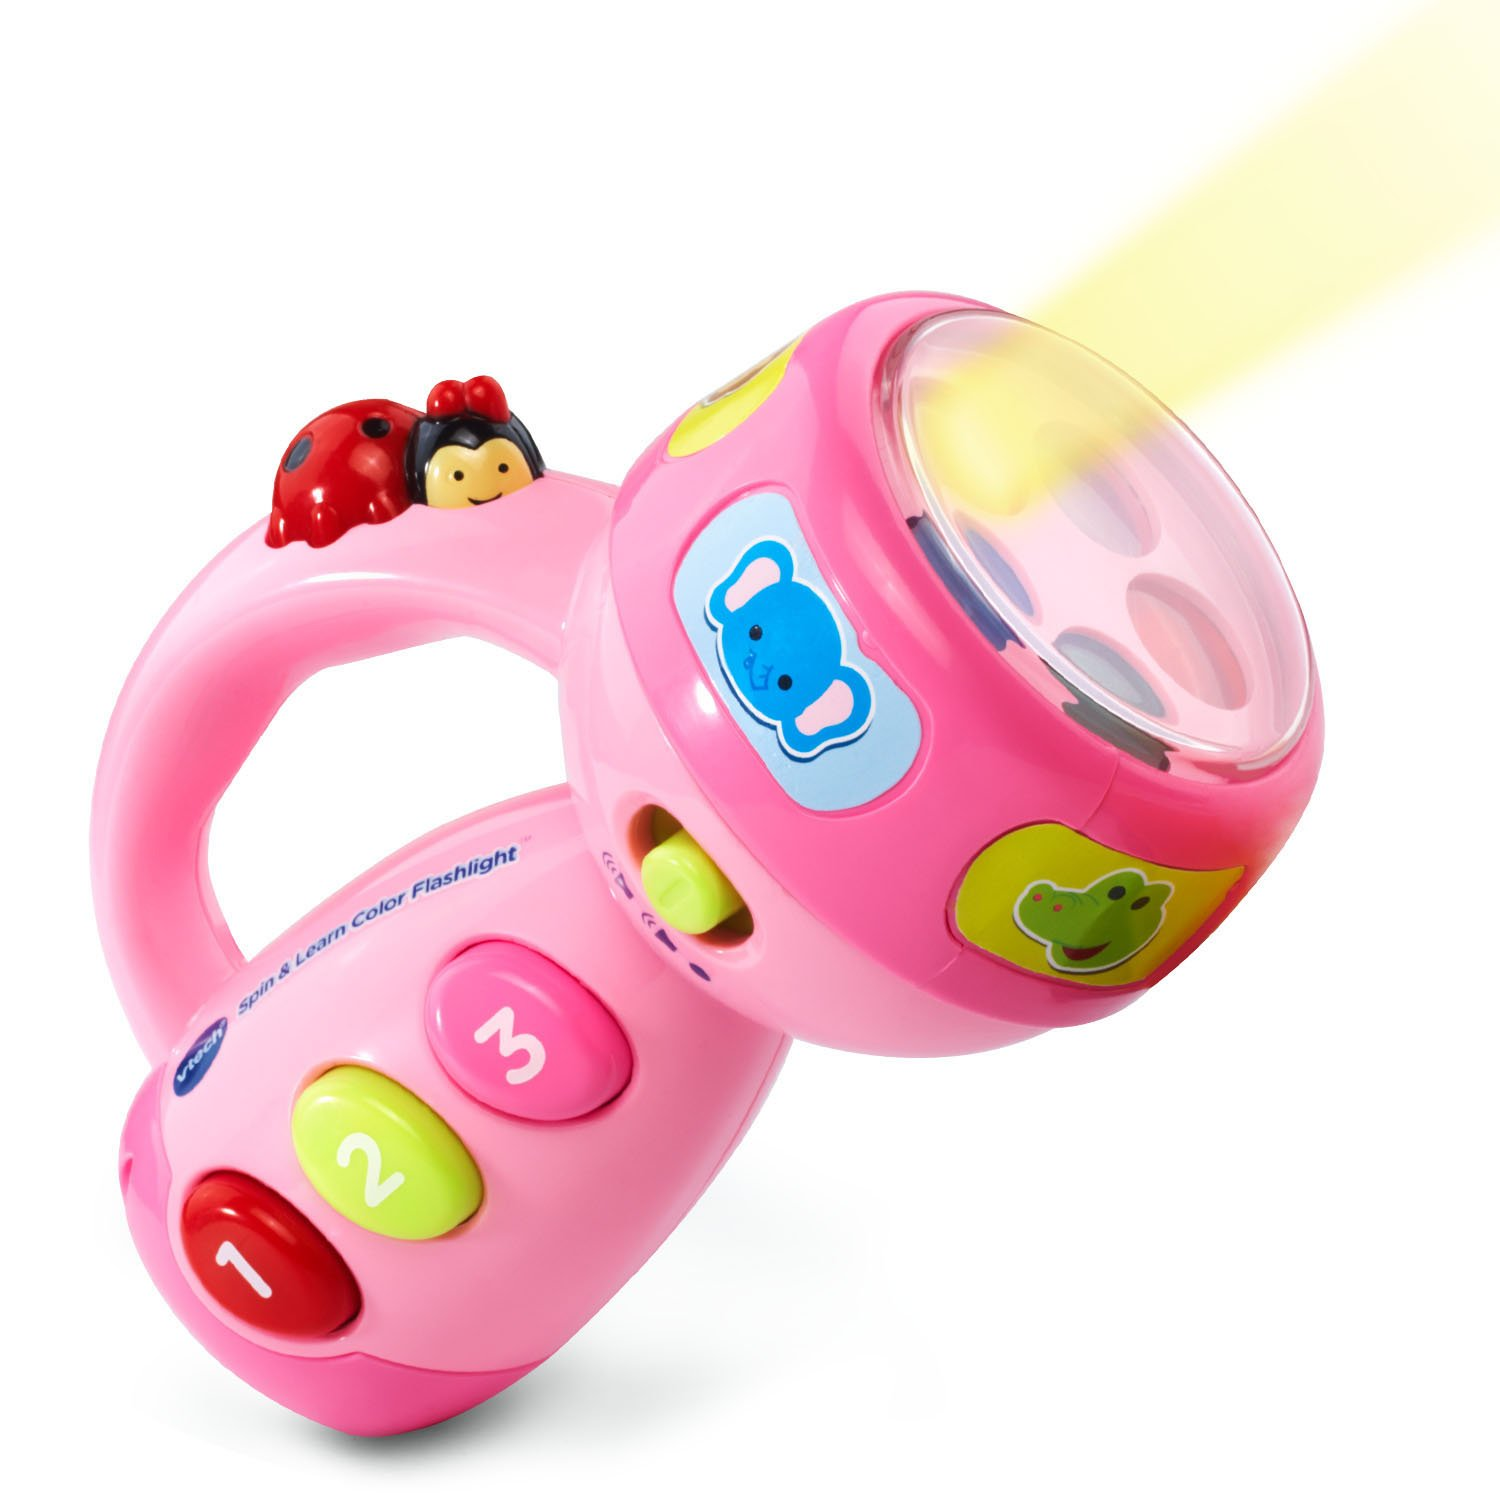 toy flashlight best toys for 1 year old girls